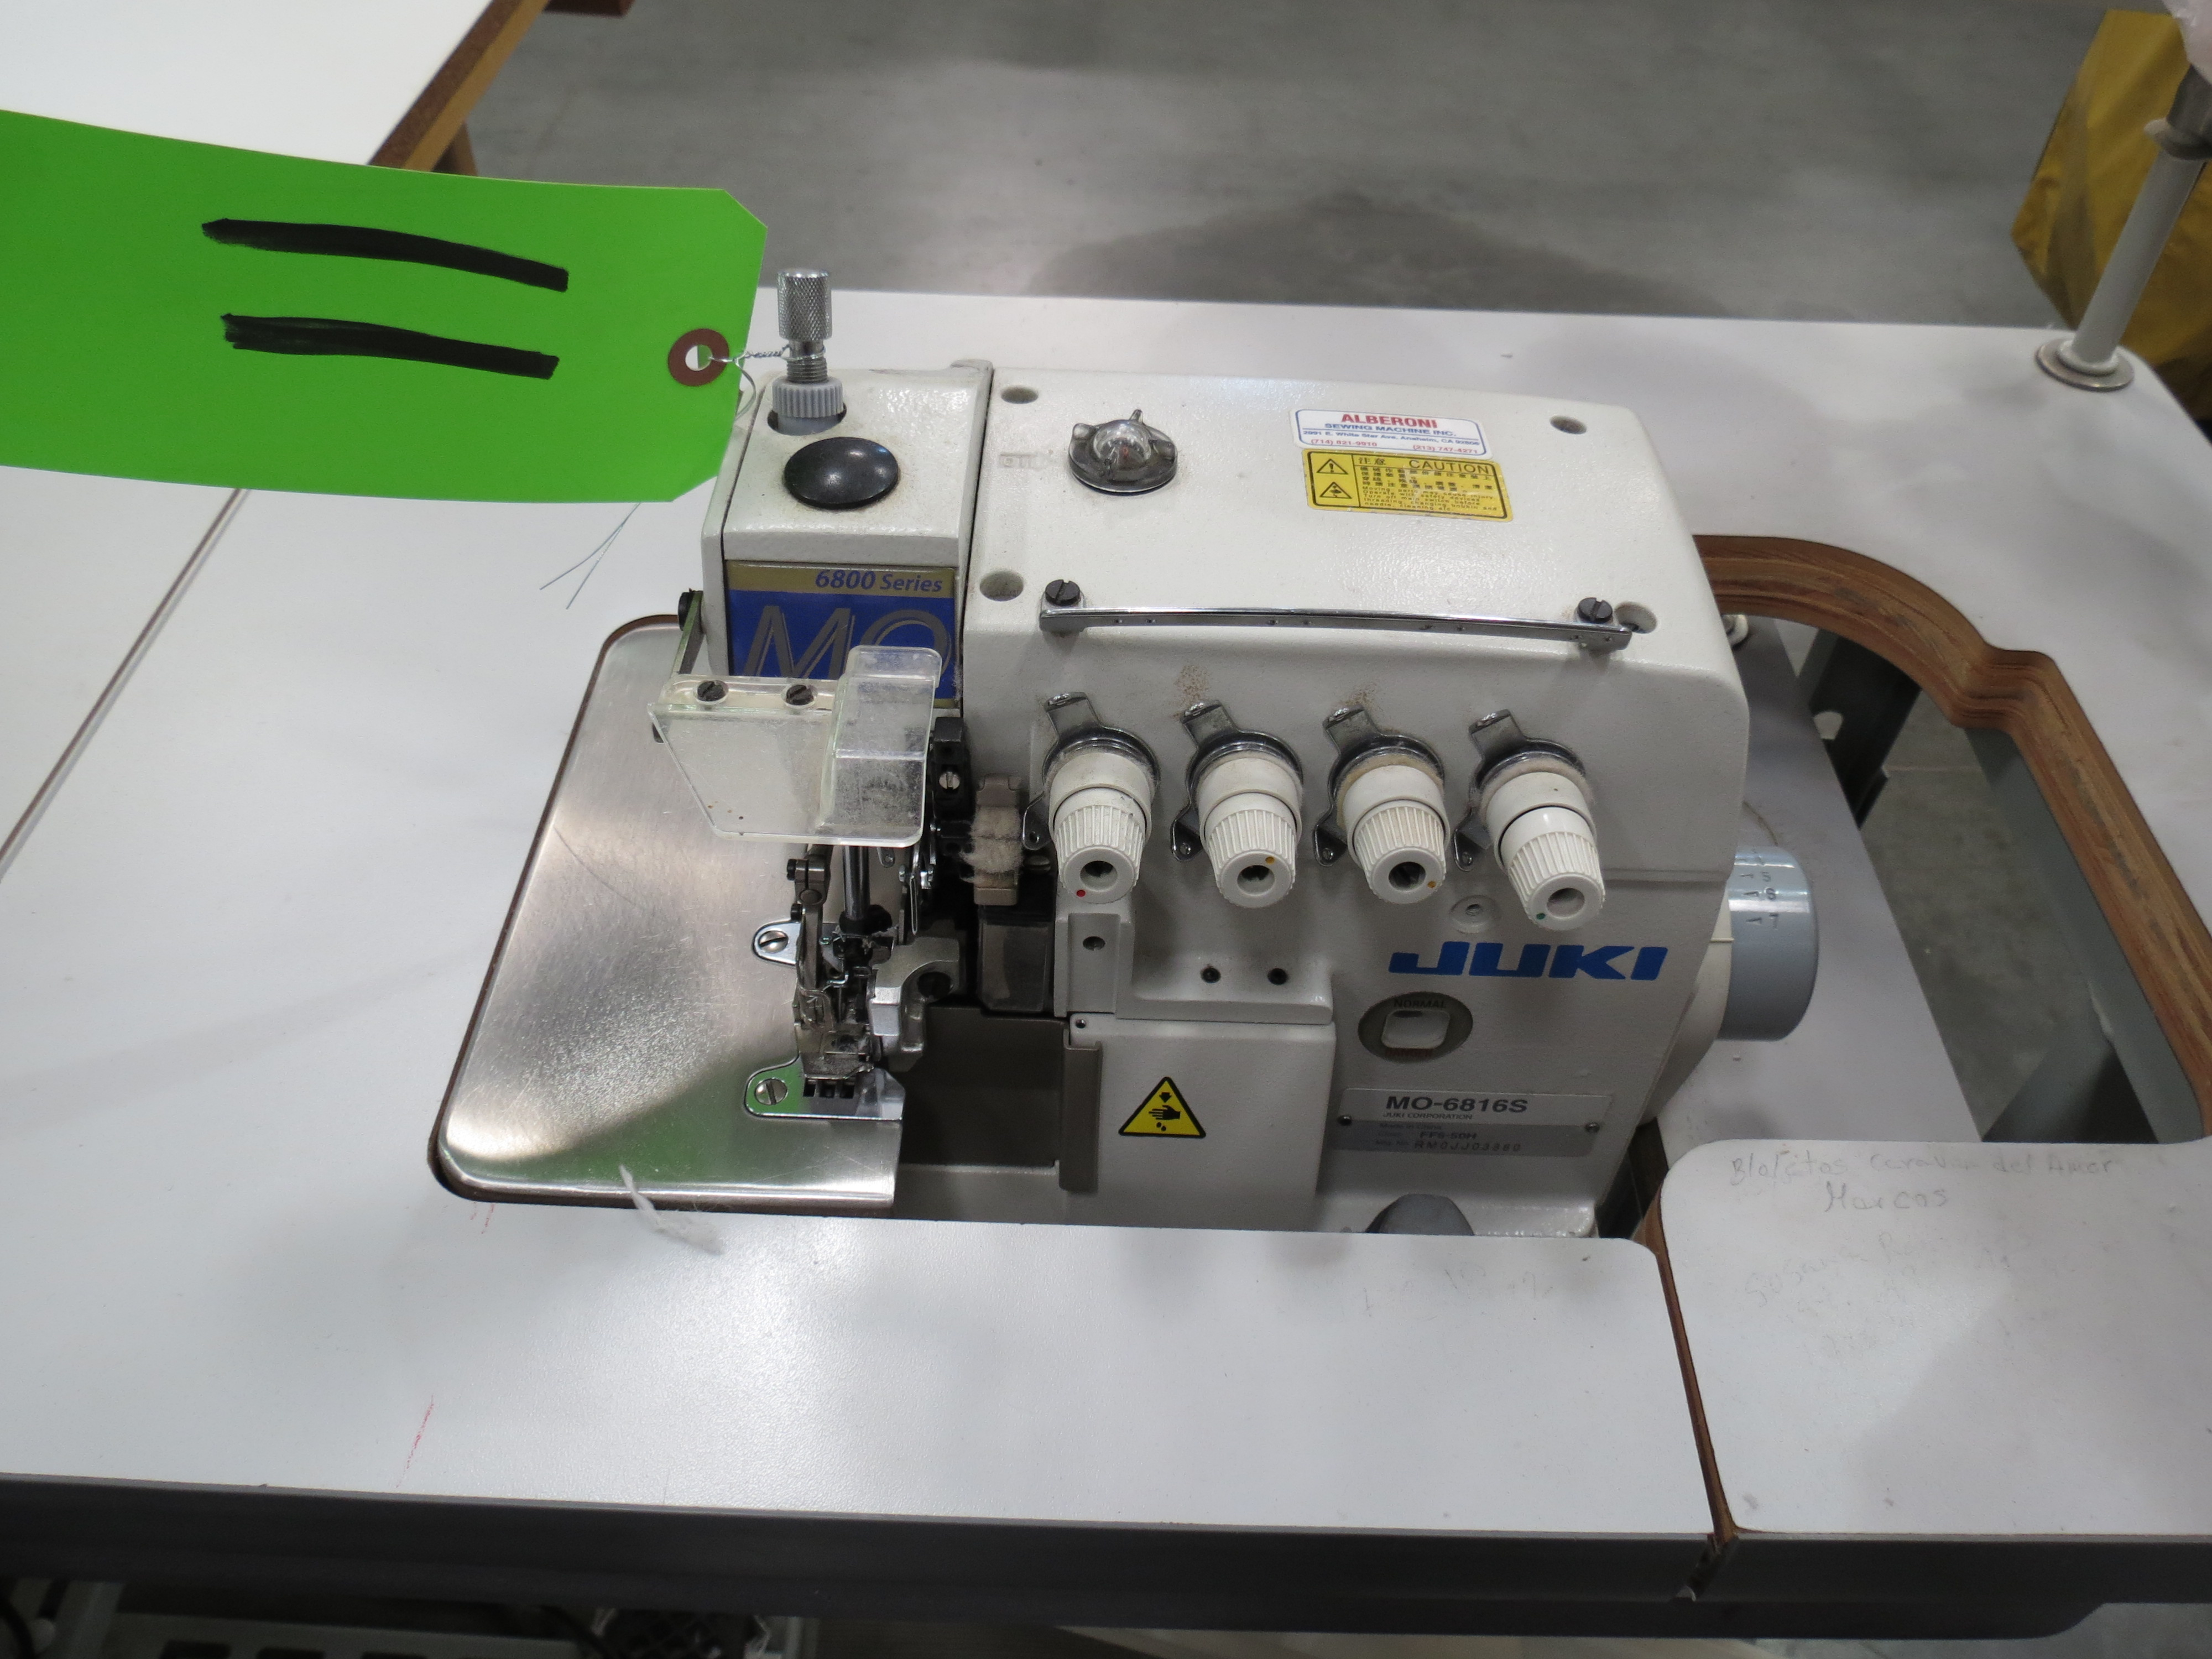 Juki MO-6816SOverlock Sewing Machine, 110V, SN:RM0JJ03880 with Table - Image 3 of 3